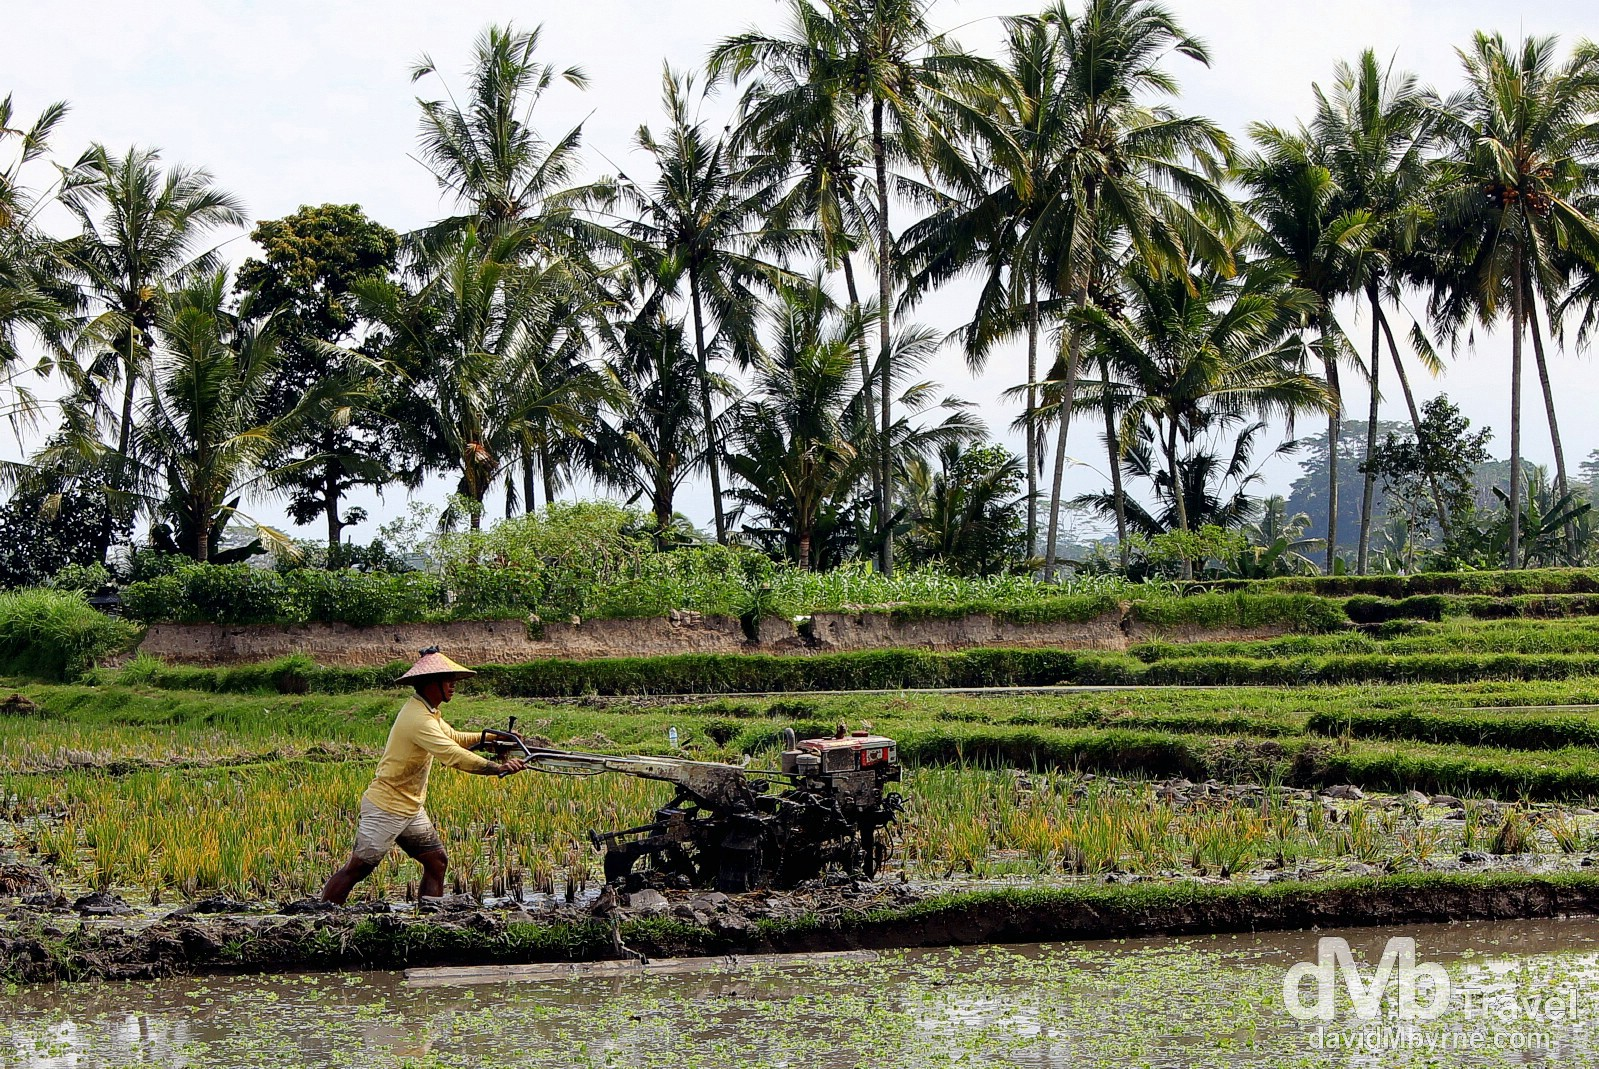 A paddy worker on the outskirts of Ubud, Bali, Indonesia. June 19th 2012.